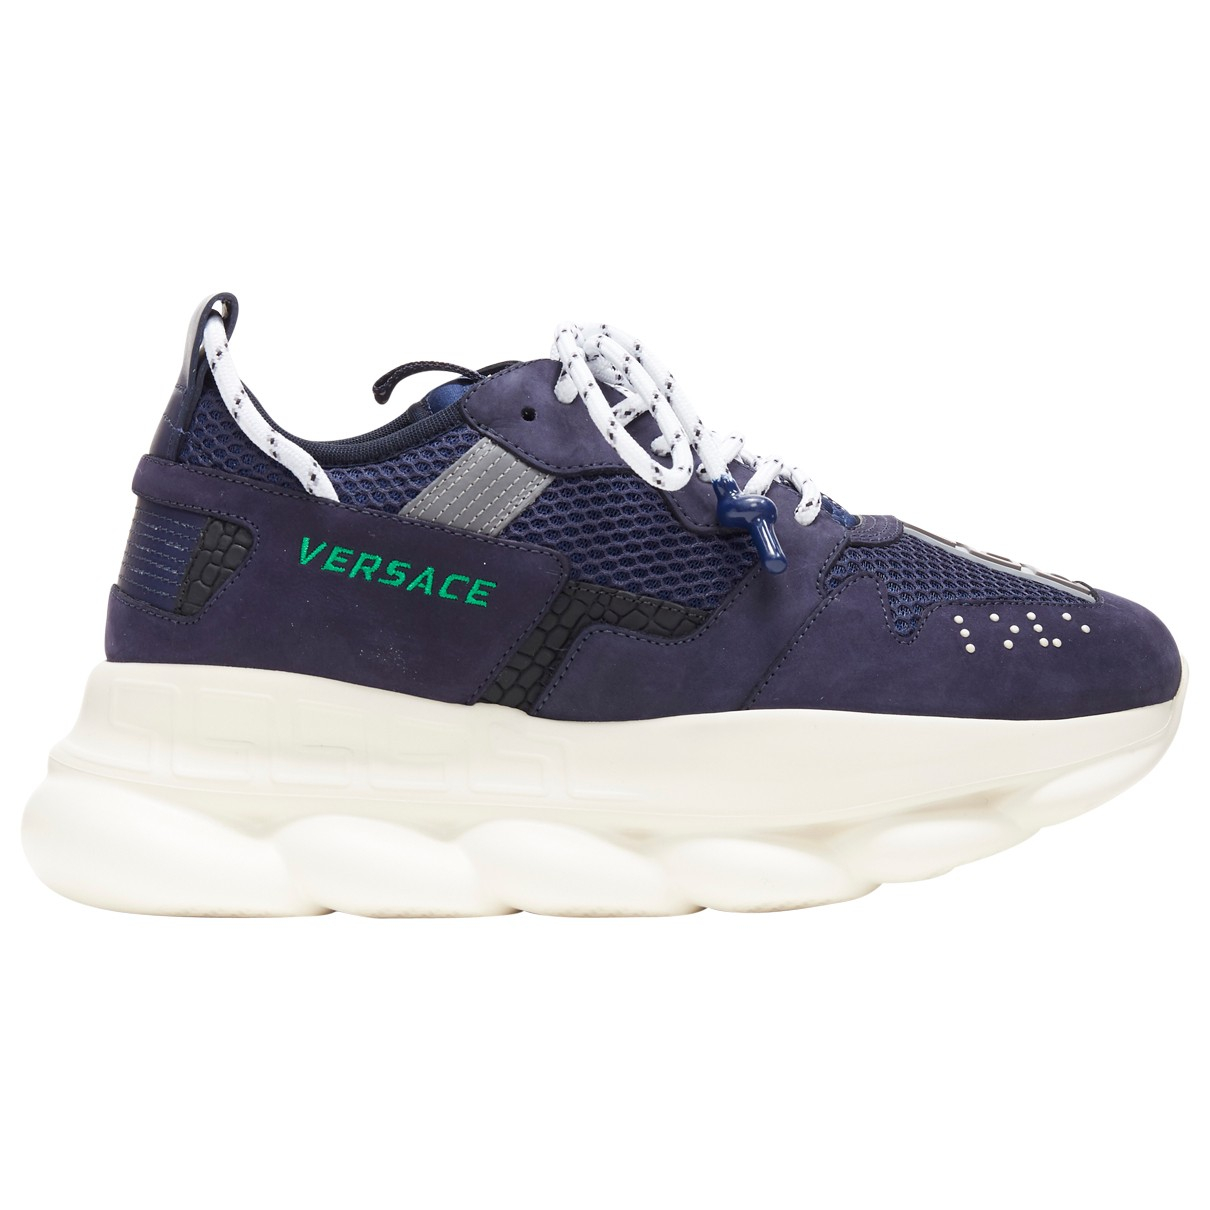 Versace Chain Reaction Navy Suede Trainers for Men 45 EU